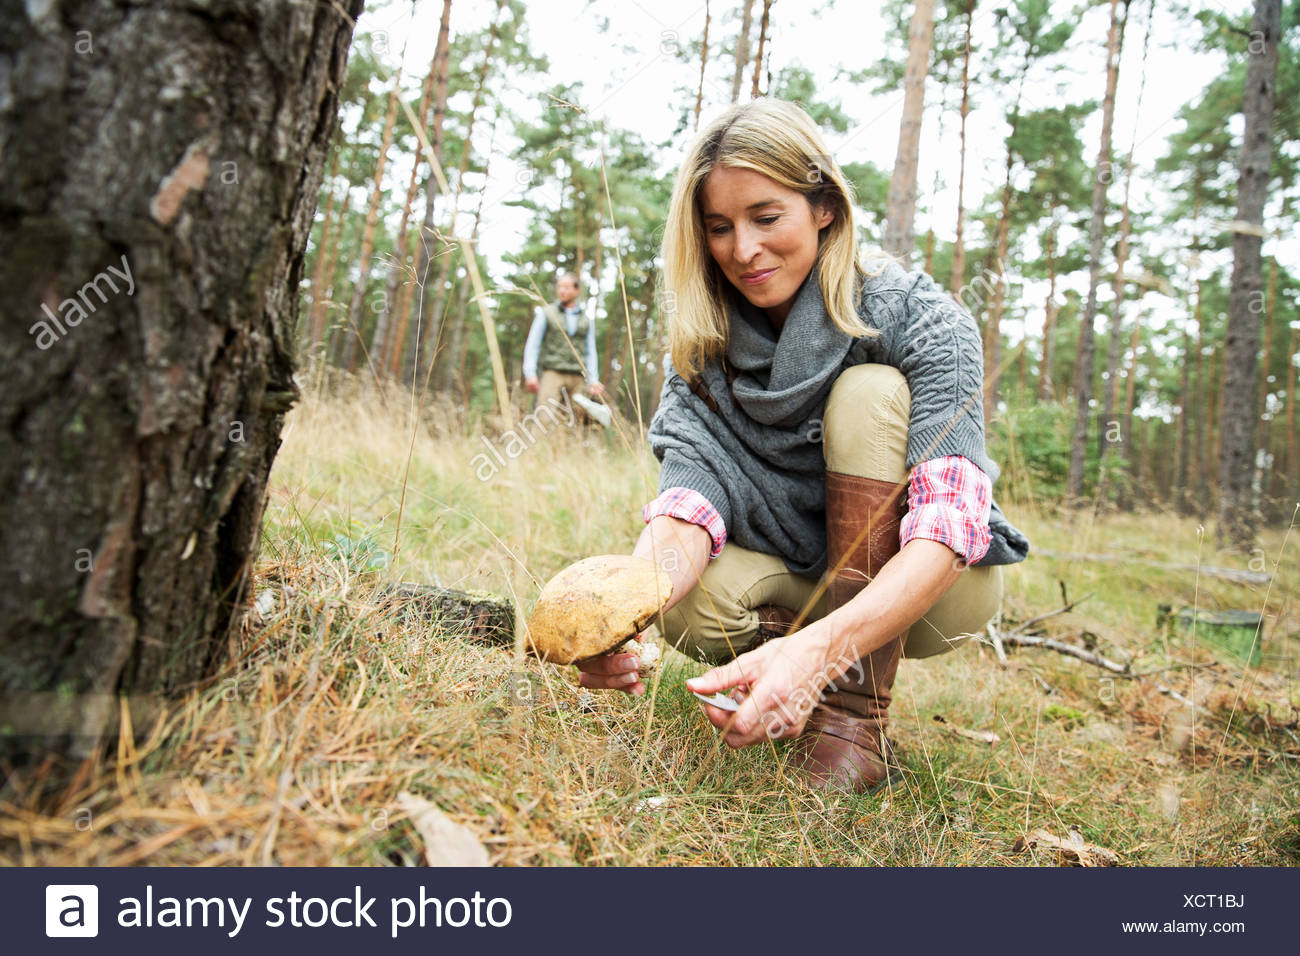 Mid adult woman foraging for mushrooms - Stock Image